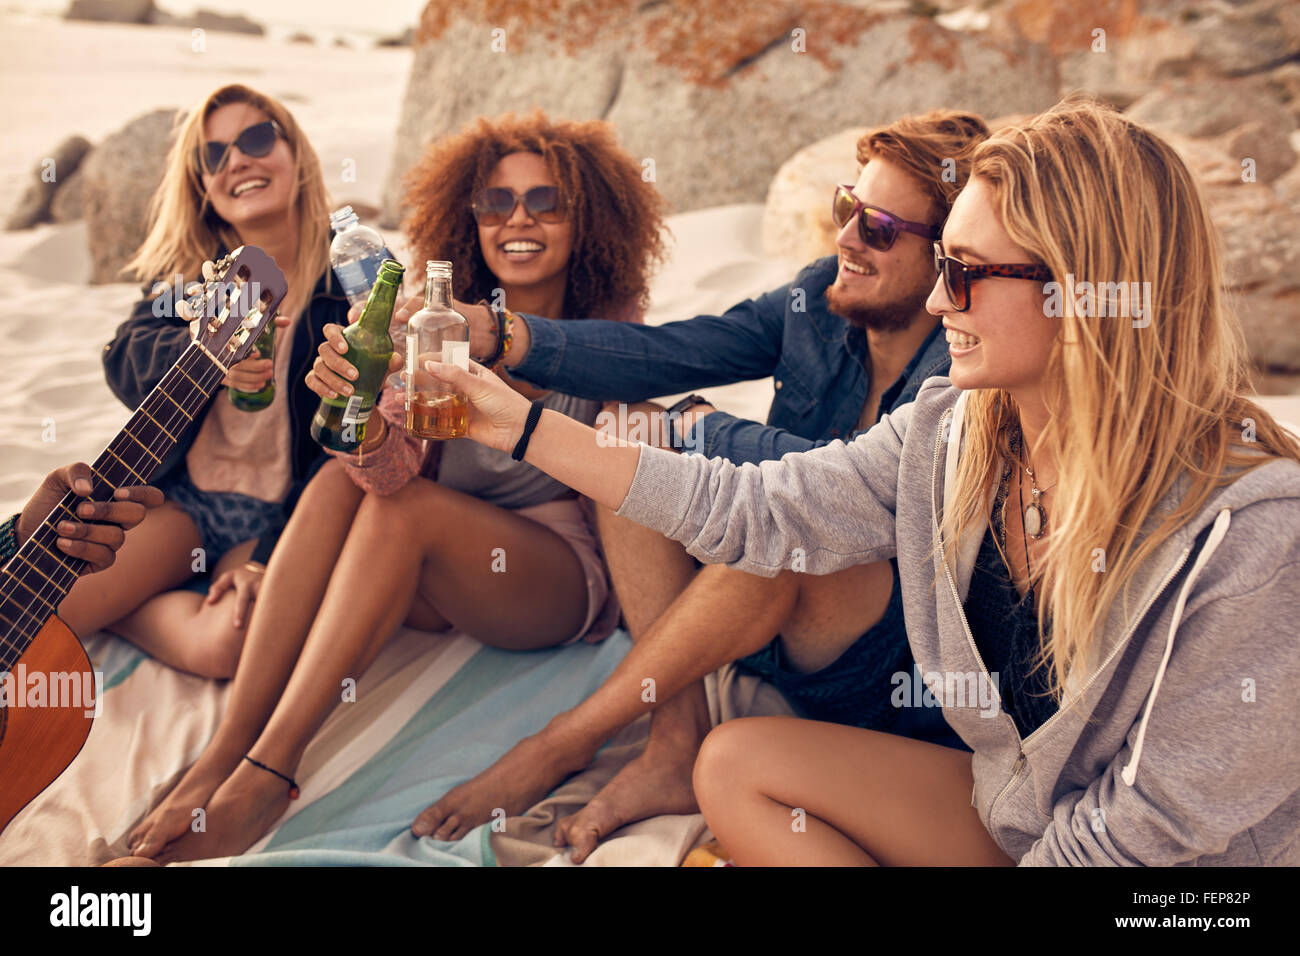 Young people sitting together at beach and having a party. Group of friends cheers with beers at the beach. - Stock Image